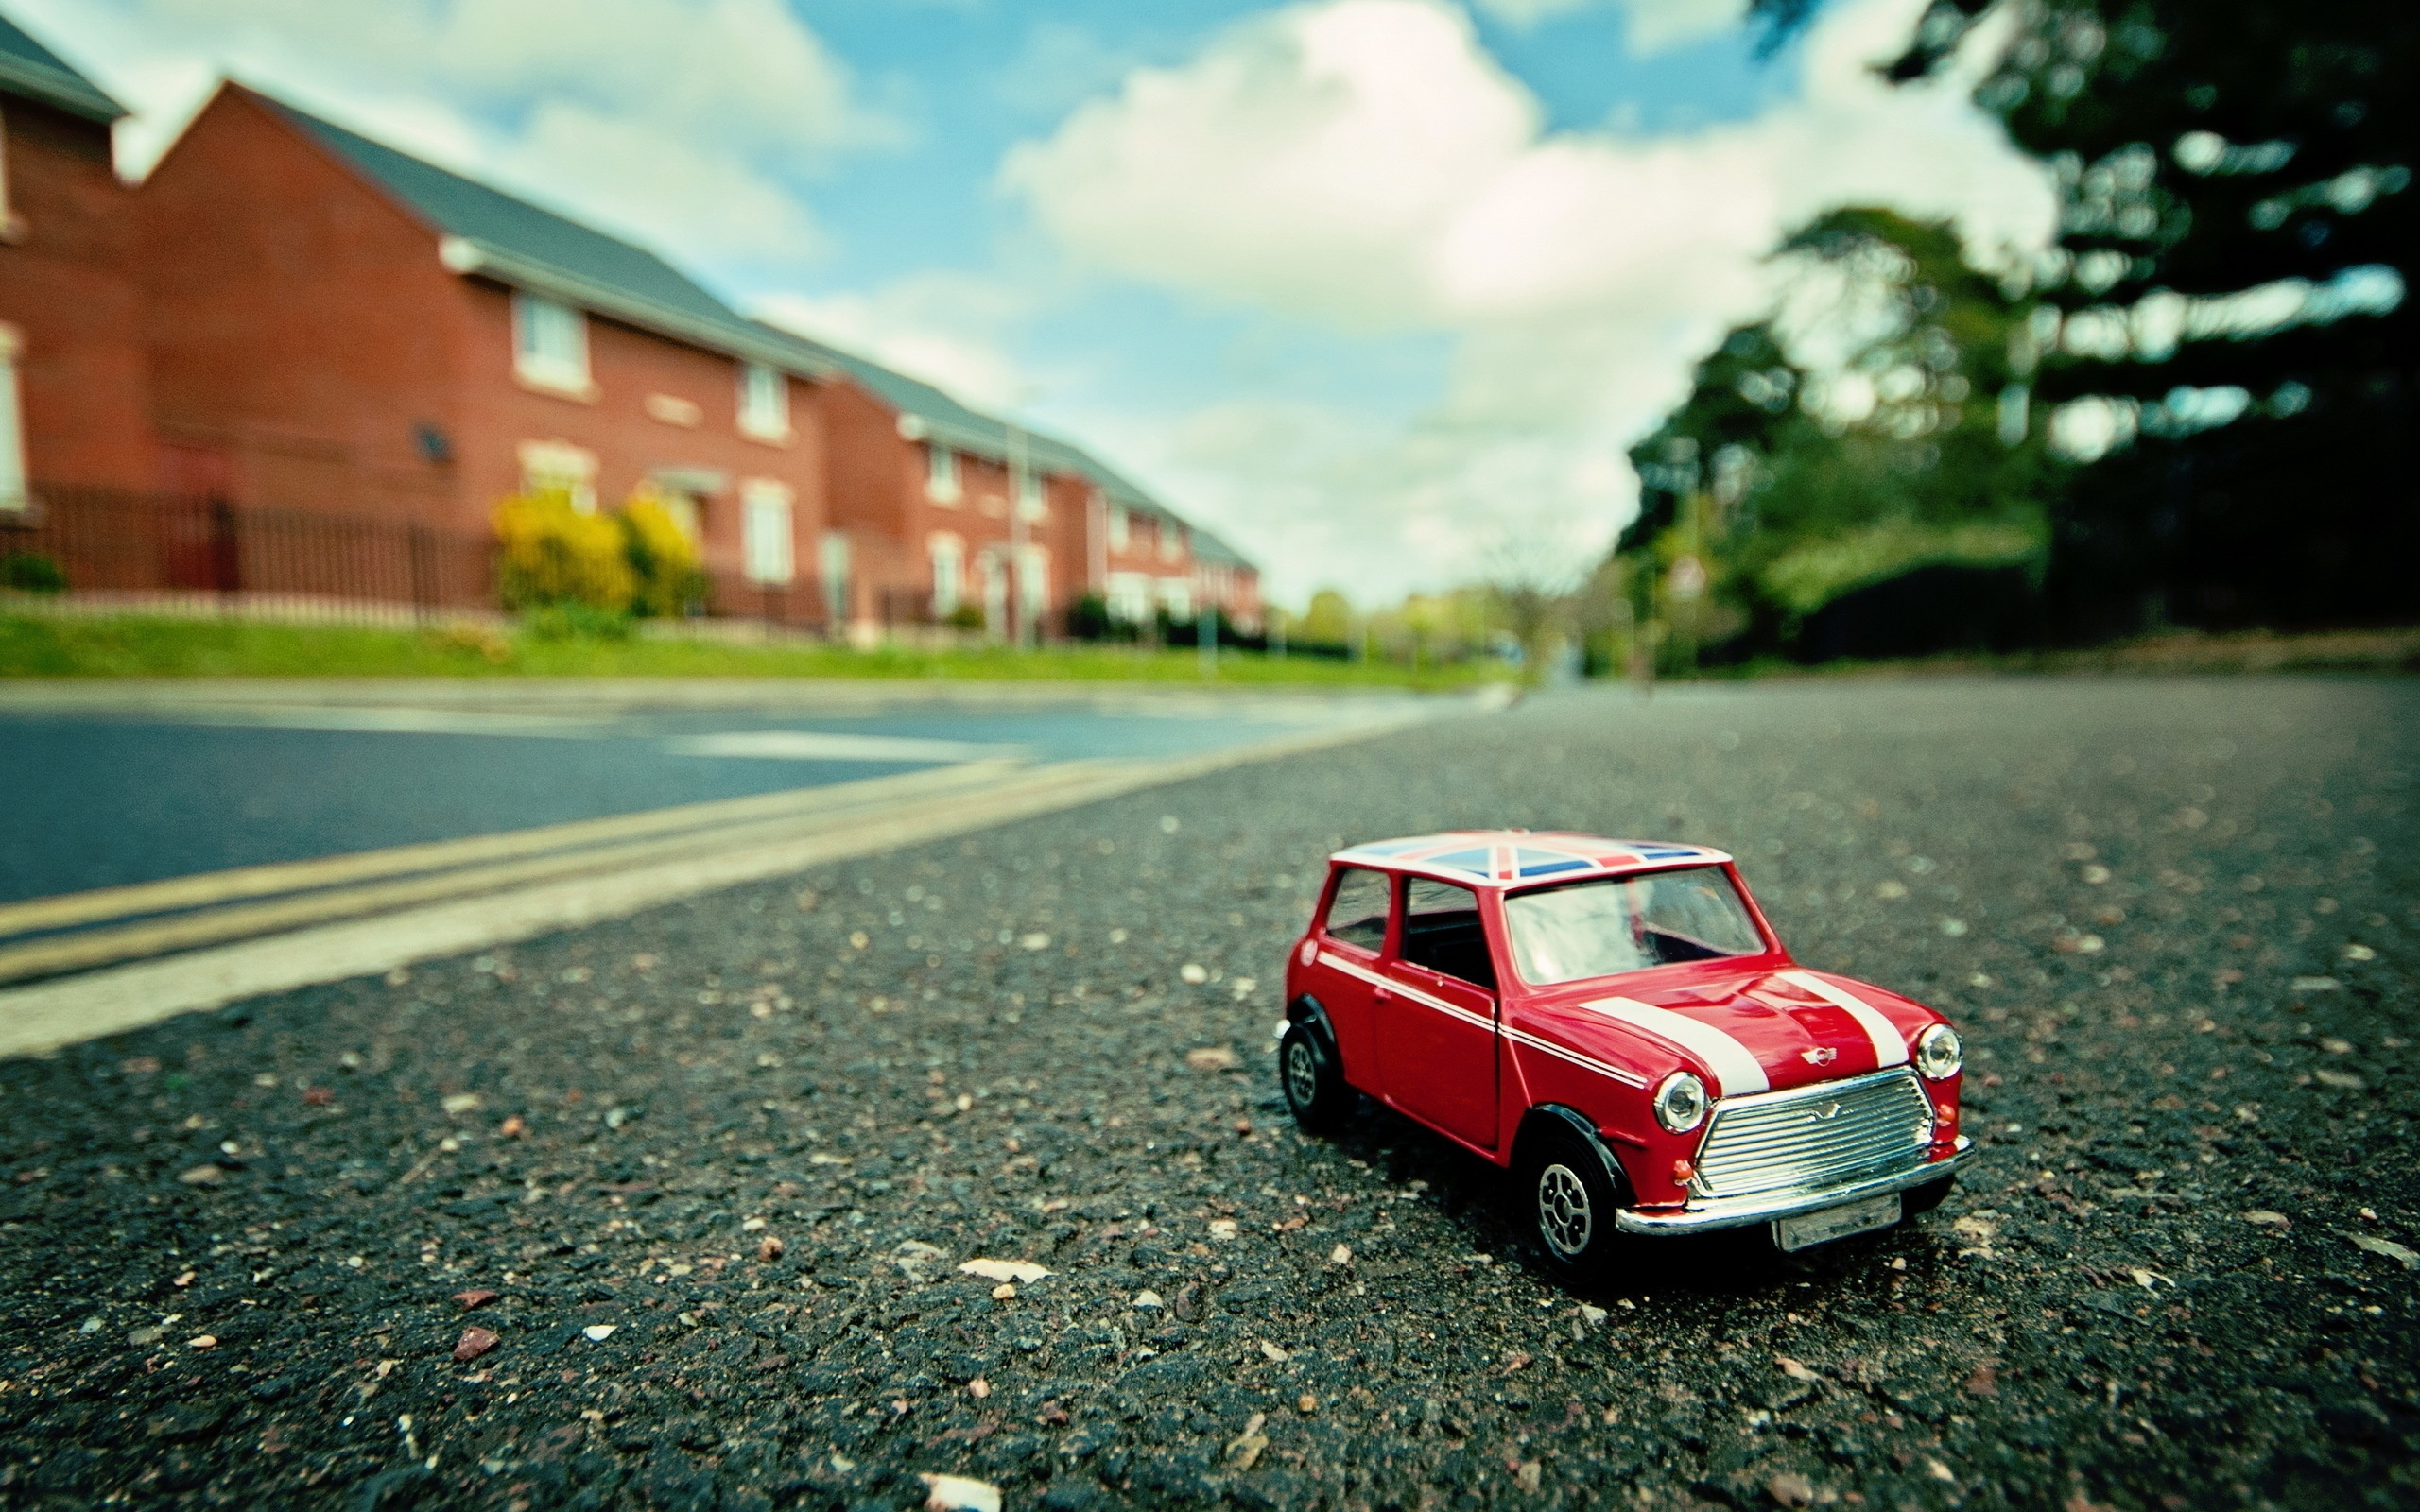 Toy Car Background Wallpaper 2560x1600 34060